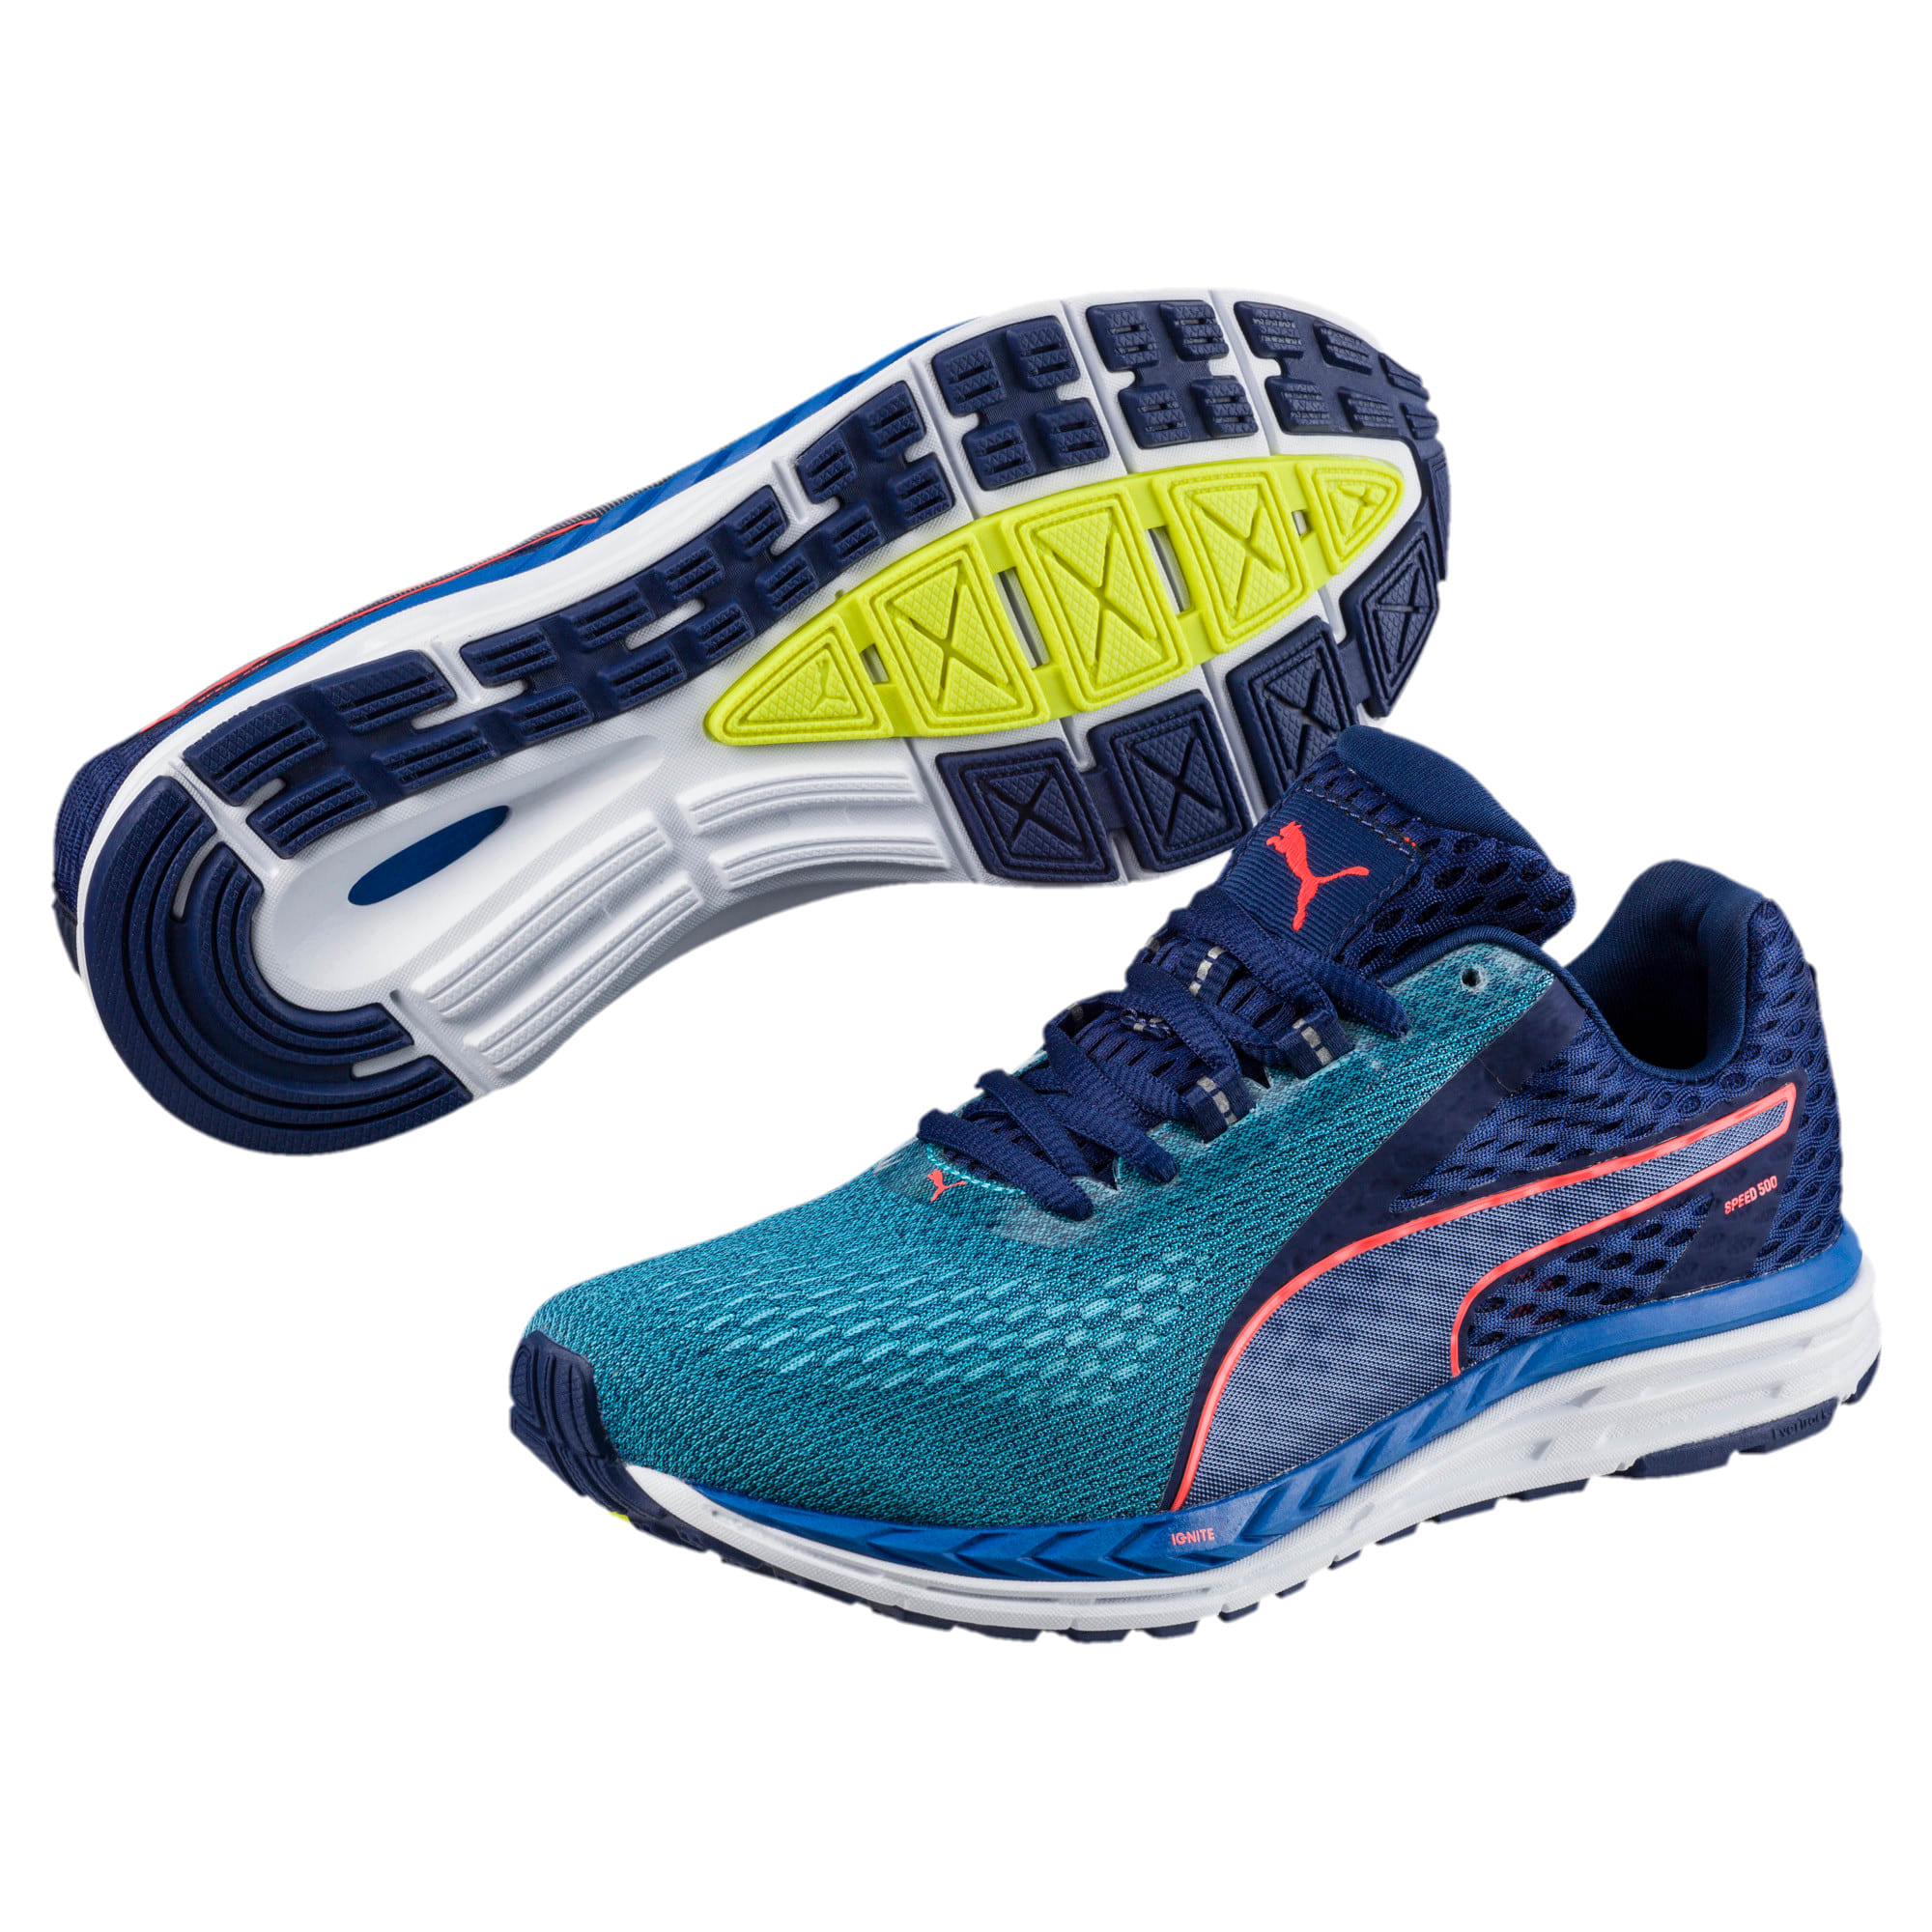 Thumbnail 2 of Speed 500 IGNITE 2 Kids' Running Shoes, Nrgy Turquoise-Blue Depths, medium-IND